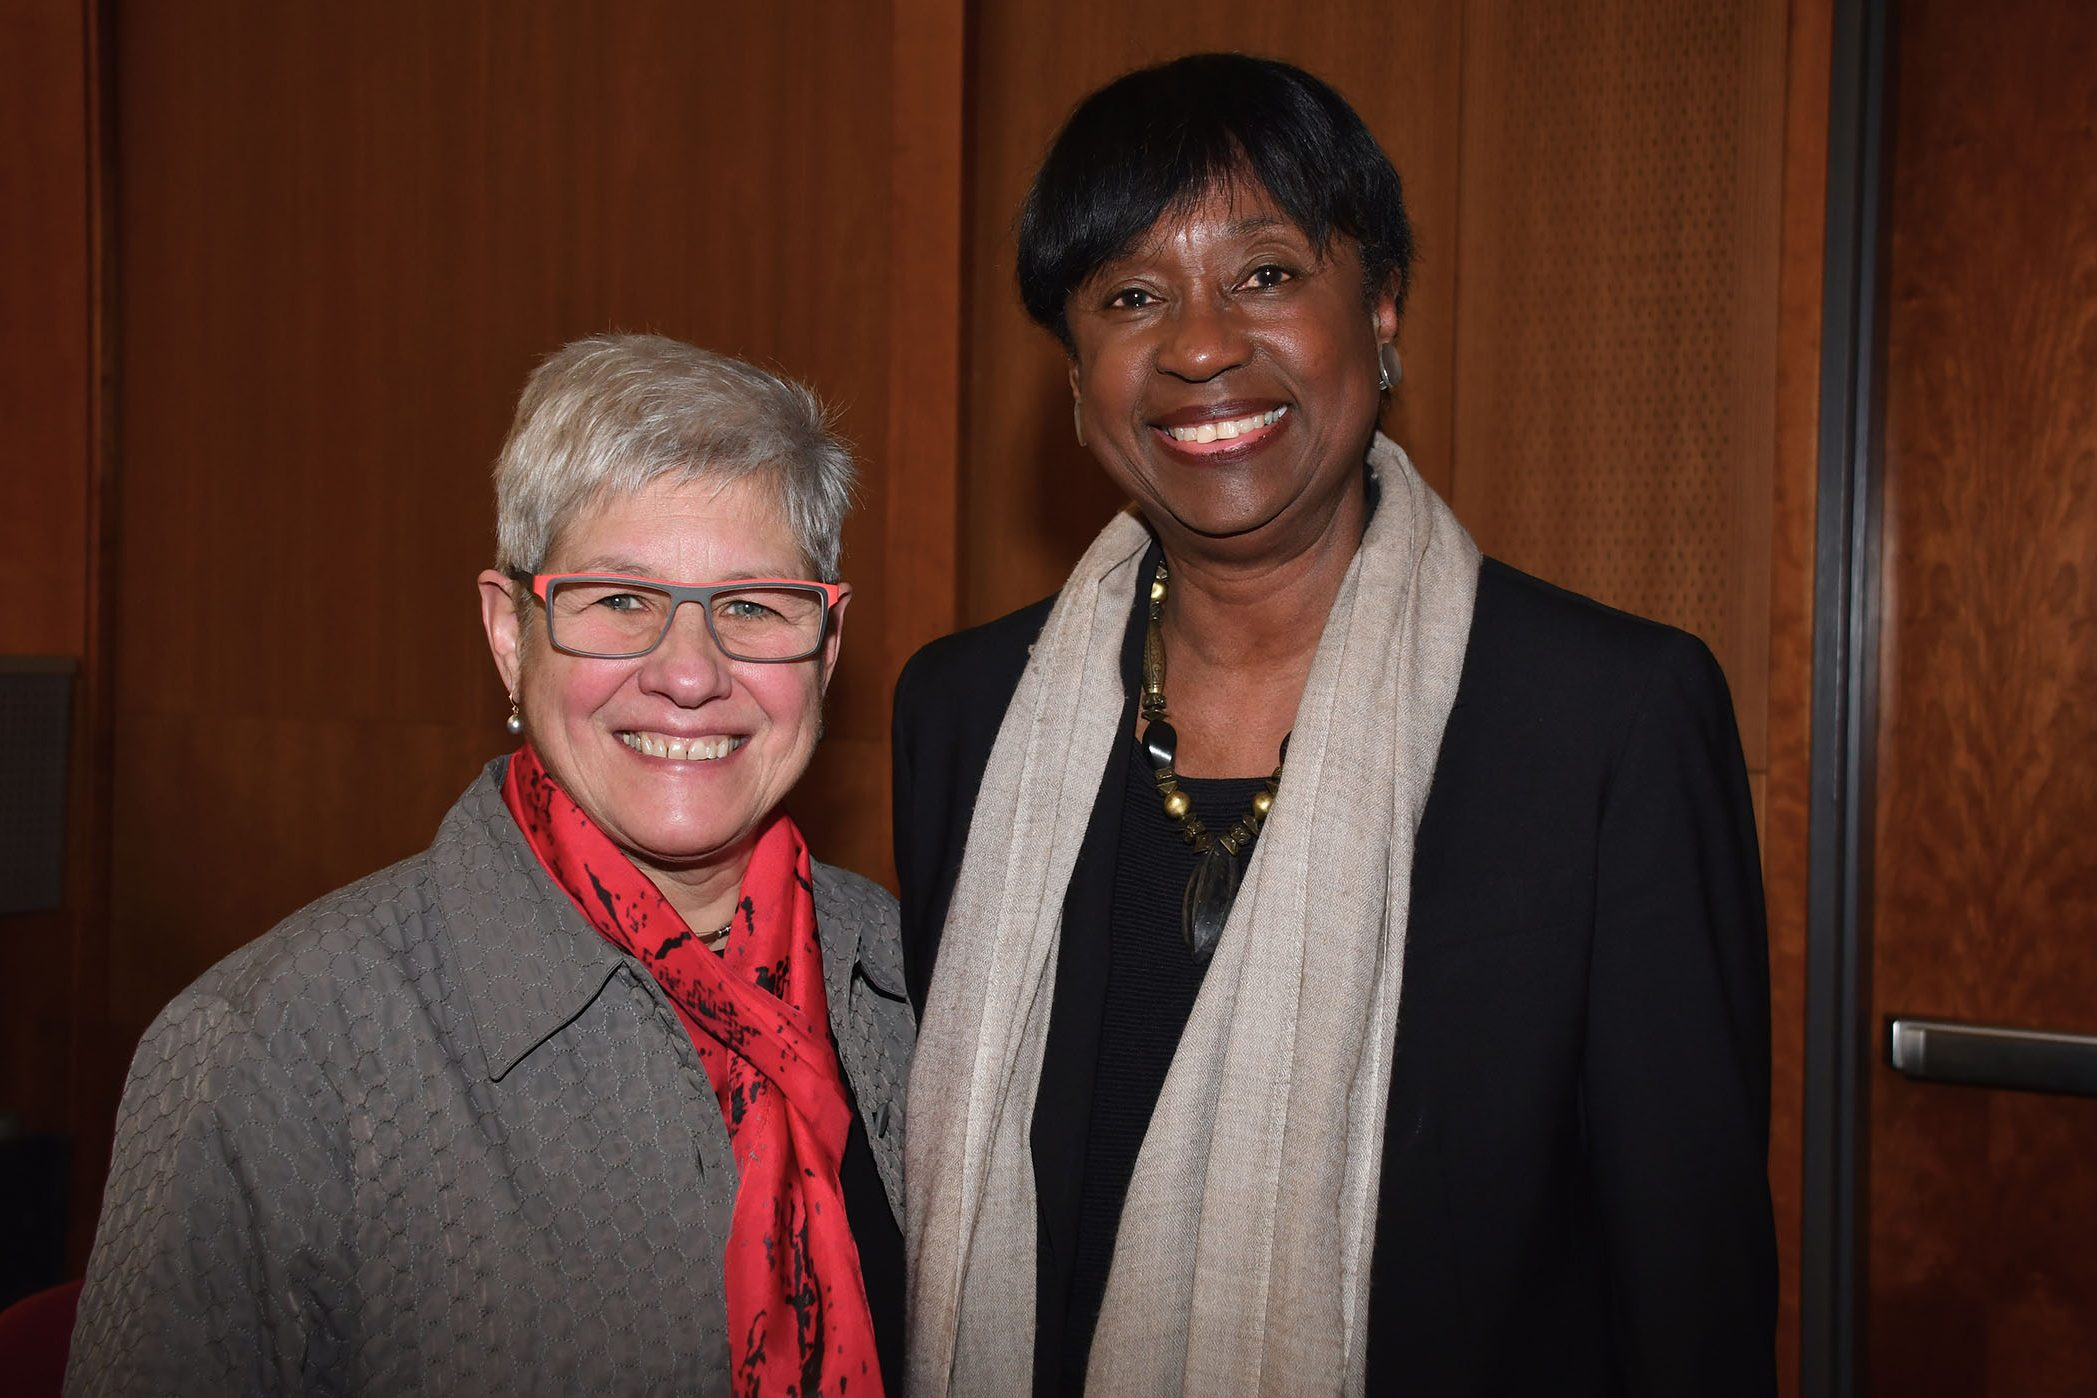 Judith D. Singer, Ph.D., and Marja Hurley, M.D.